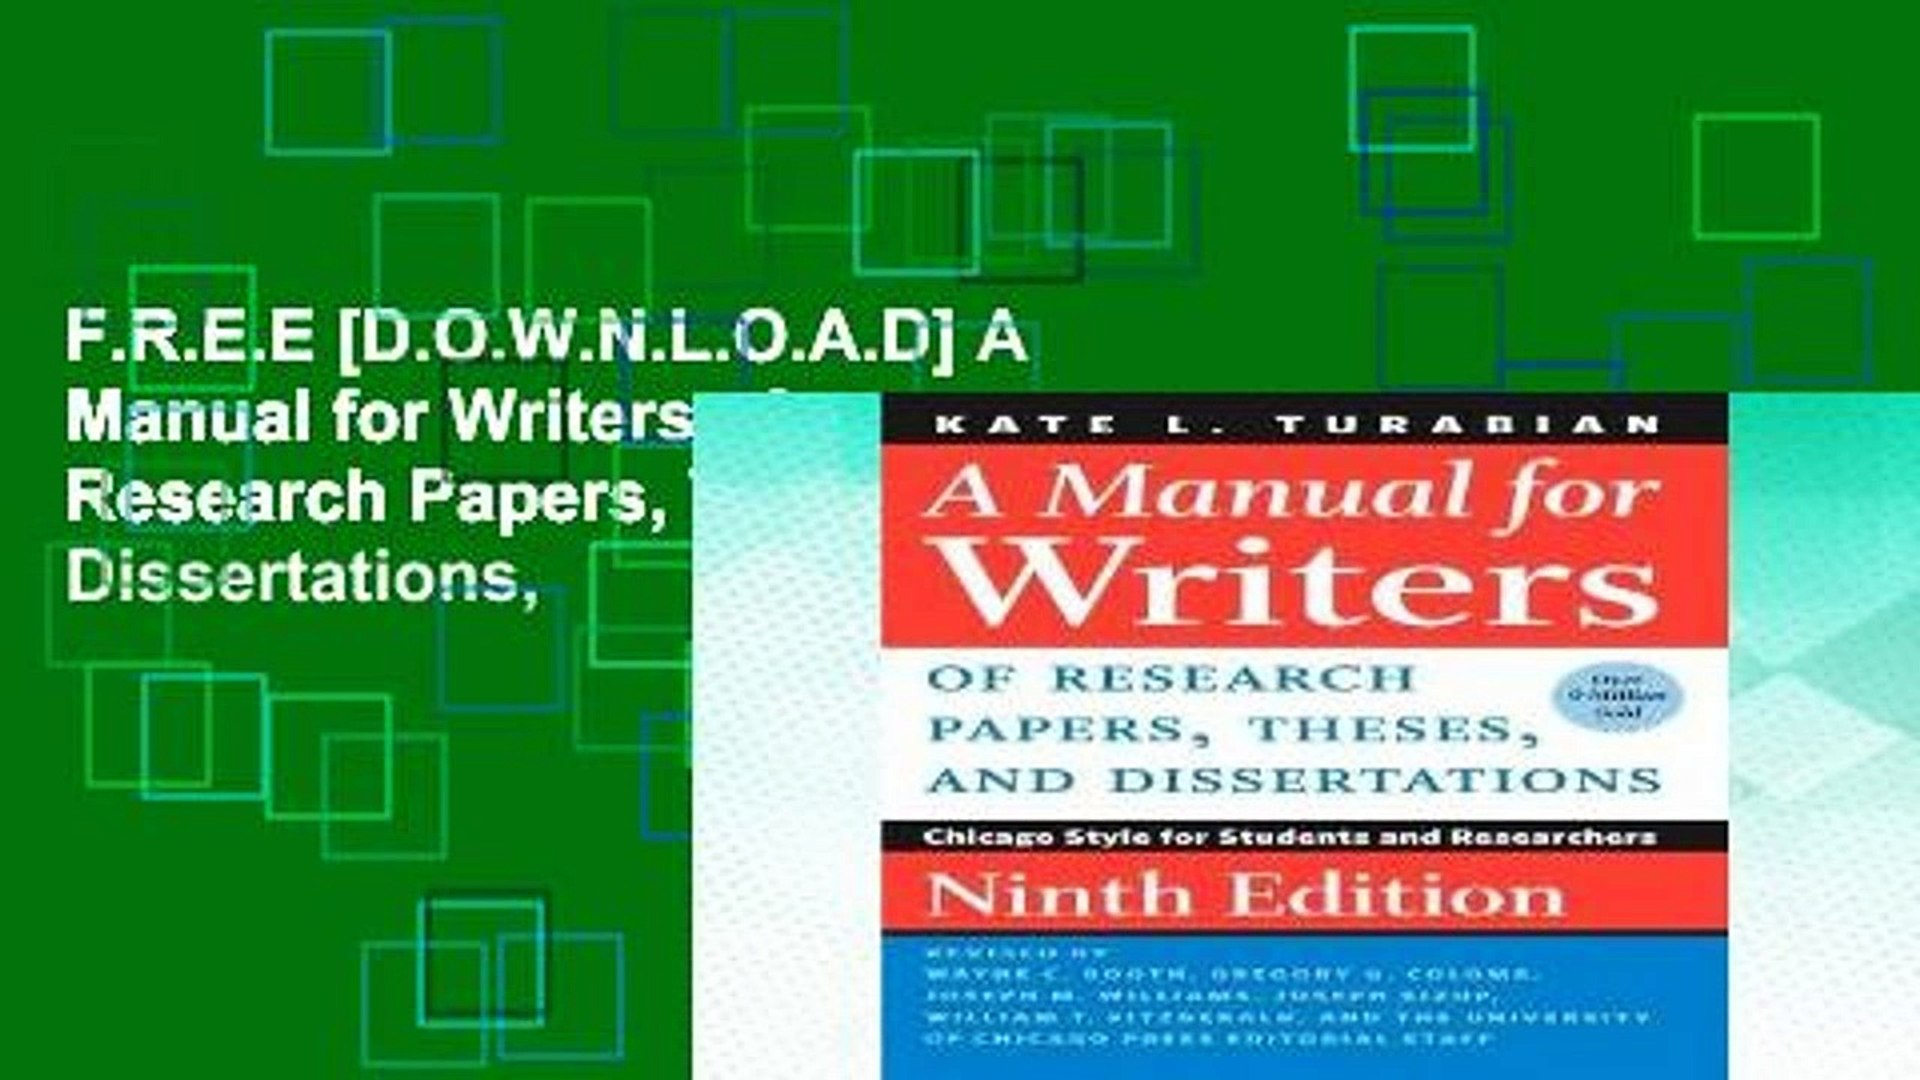 013 X1080 Kcn Research Paper Manual For Writers Of Papers Theses And Magnificent Dissertations 8th 13 A 9th Edition Apa Full